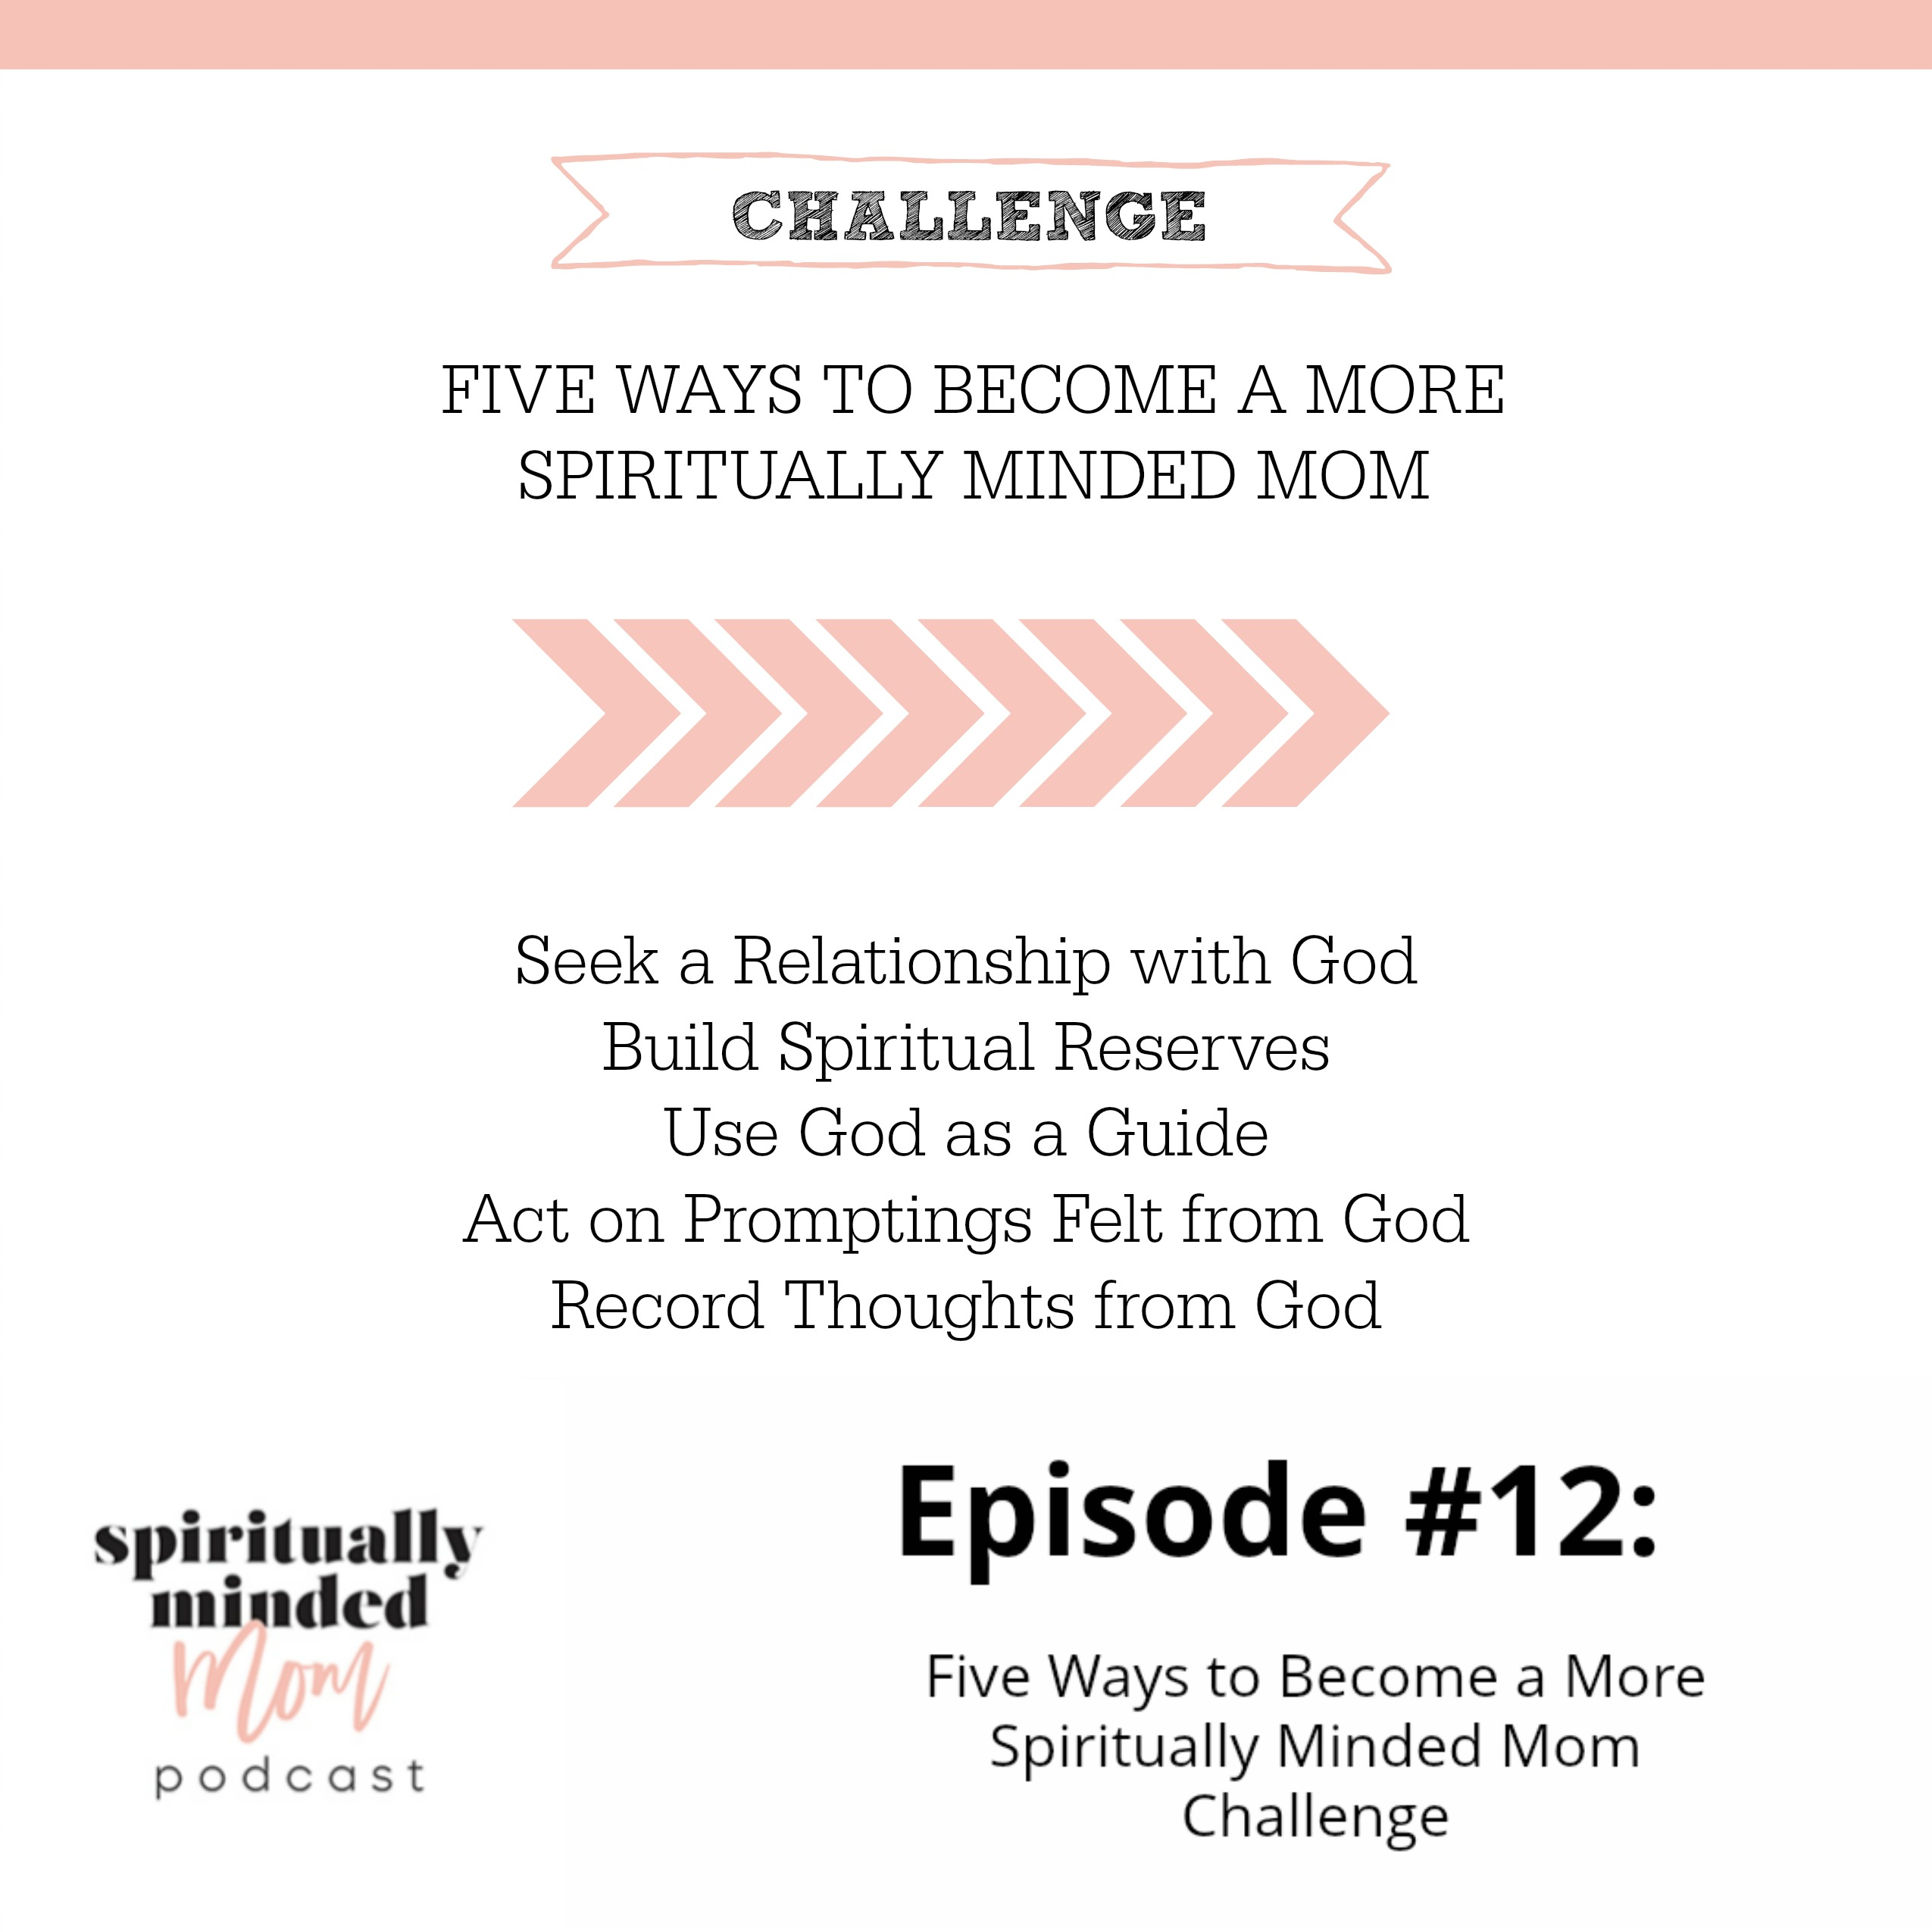 SMM 012: Five Ways to Become a More Spiritually Minded Mom Challenge